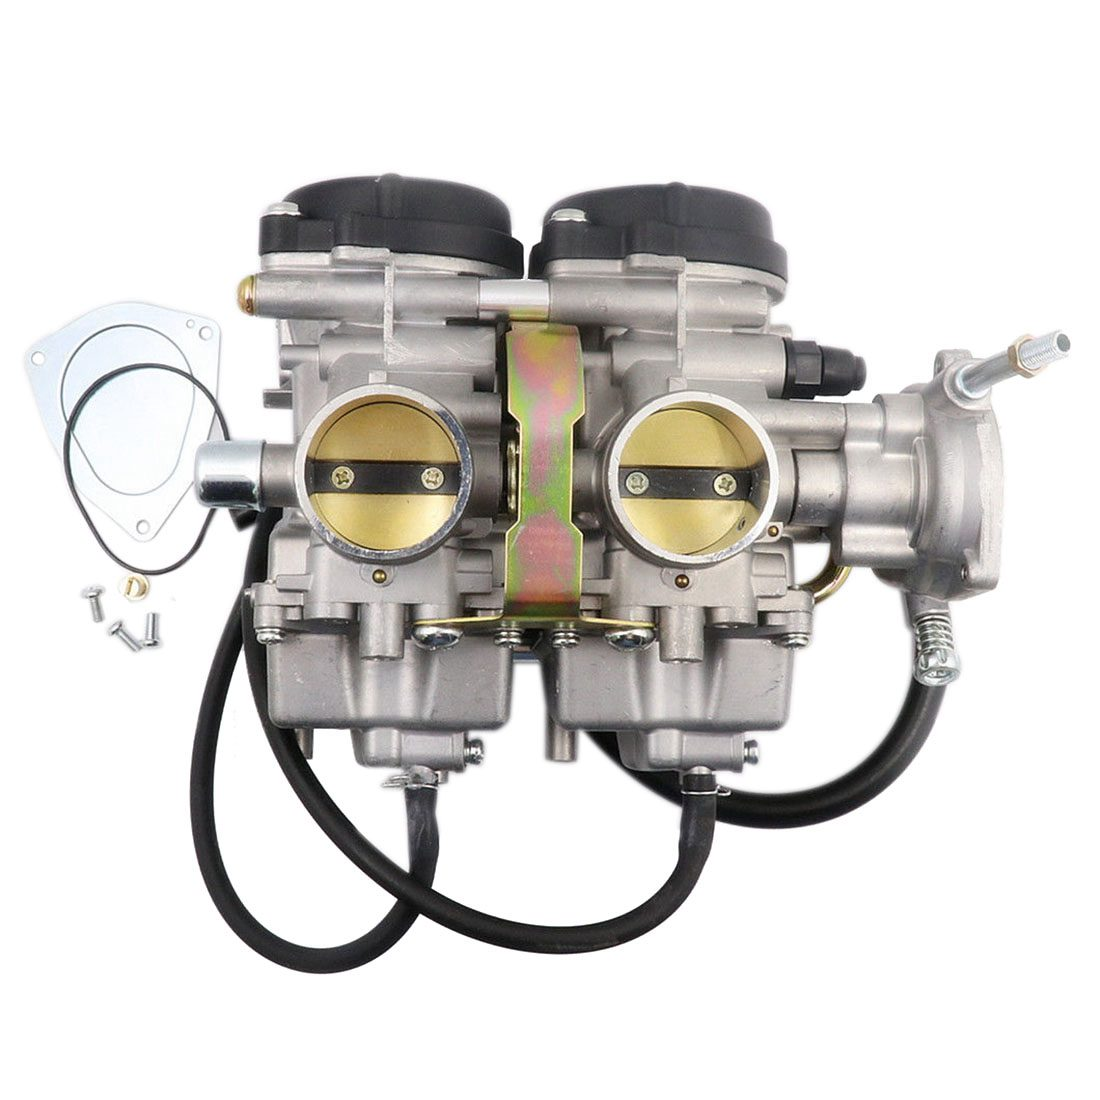 New Carburetor for YAMAHA RAPTOR 660 YFM660 2001-2005 Carb wheel bearing for yamaha grizzly 660 700 550 atv yfm660 93305 00602 00 4 pcs